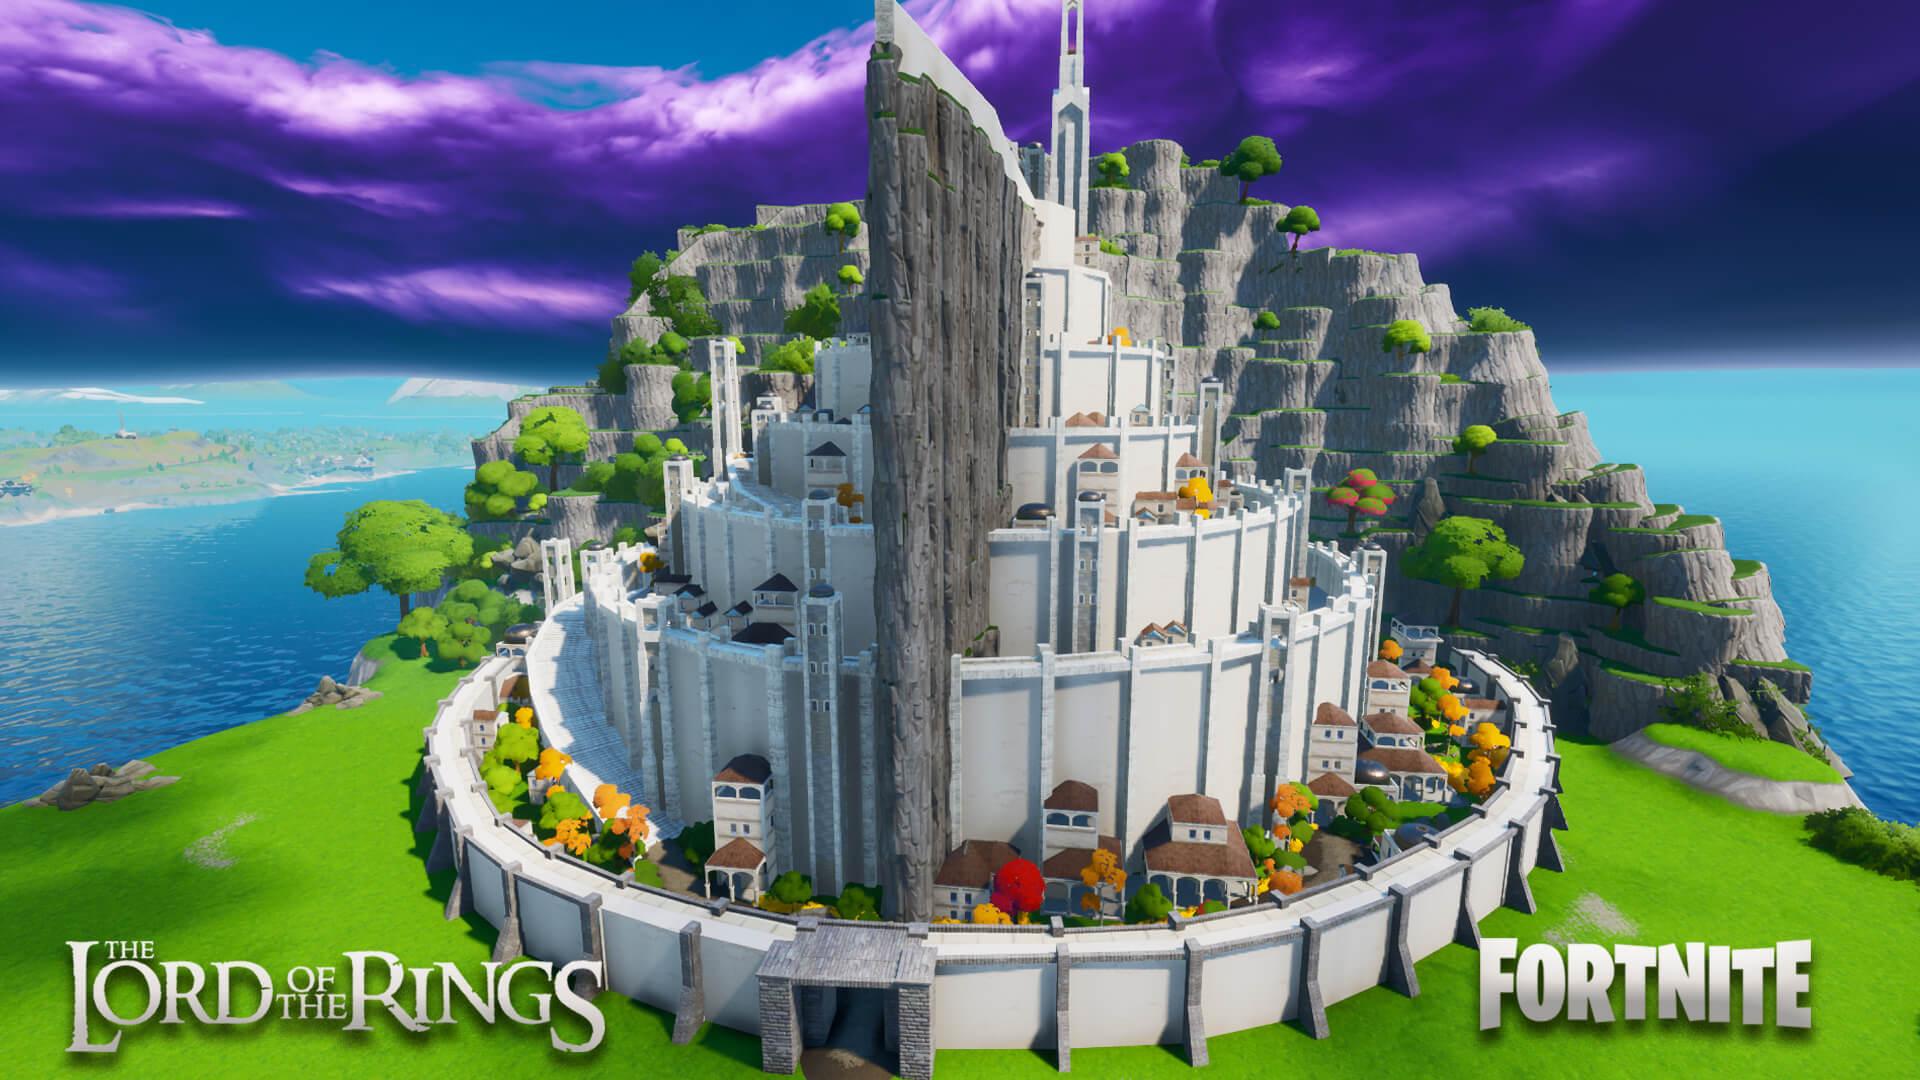 MINAS TIRITH FROM THE LORD OF THE RINGS